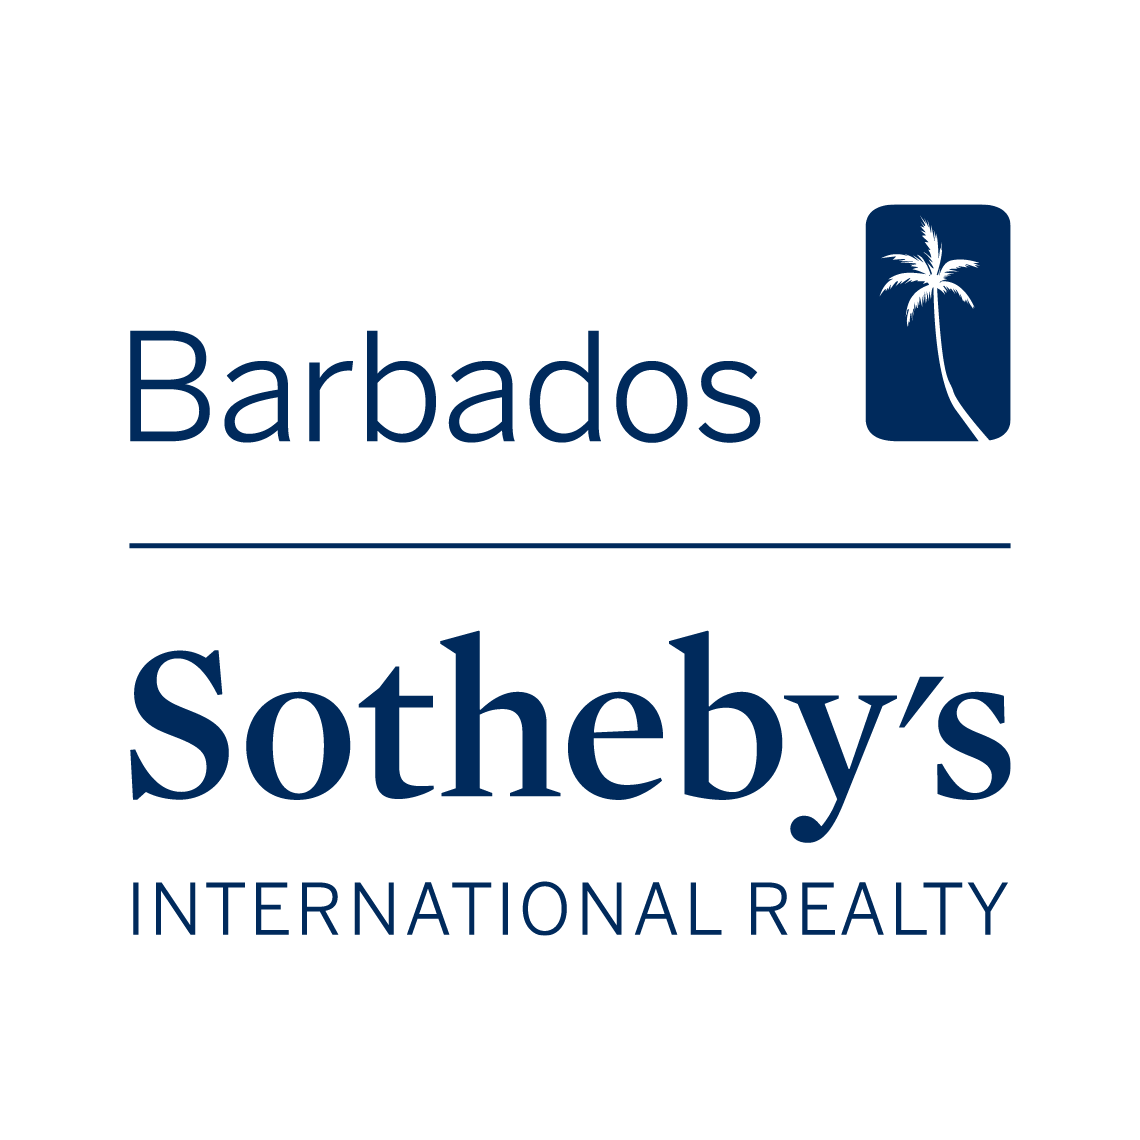 Barbados Sotheby's International Realty